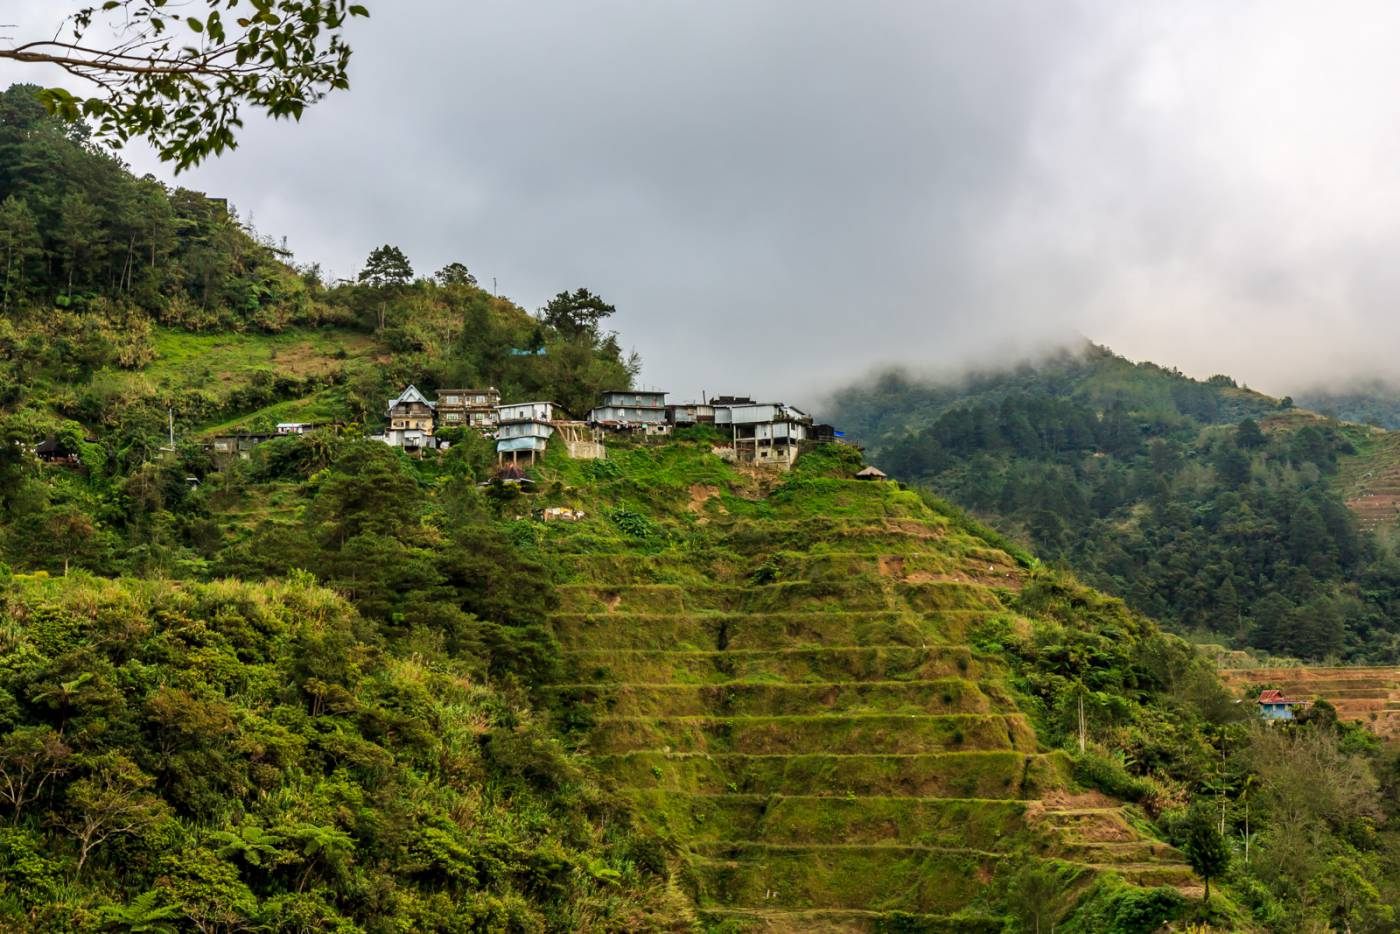 Buildings on a hill